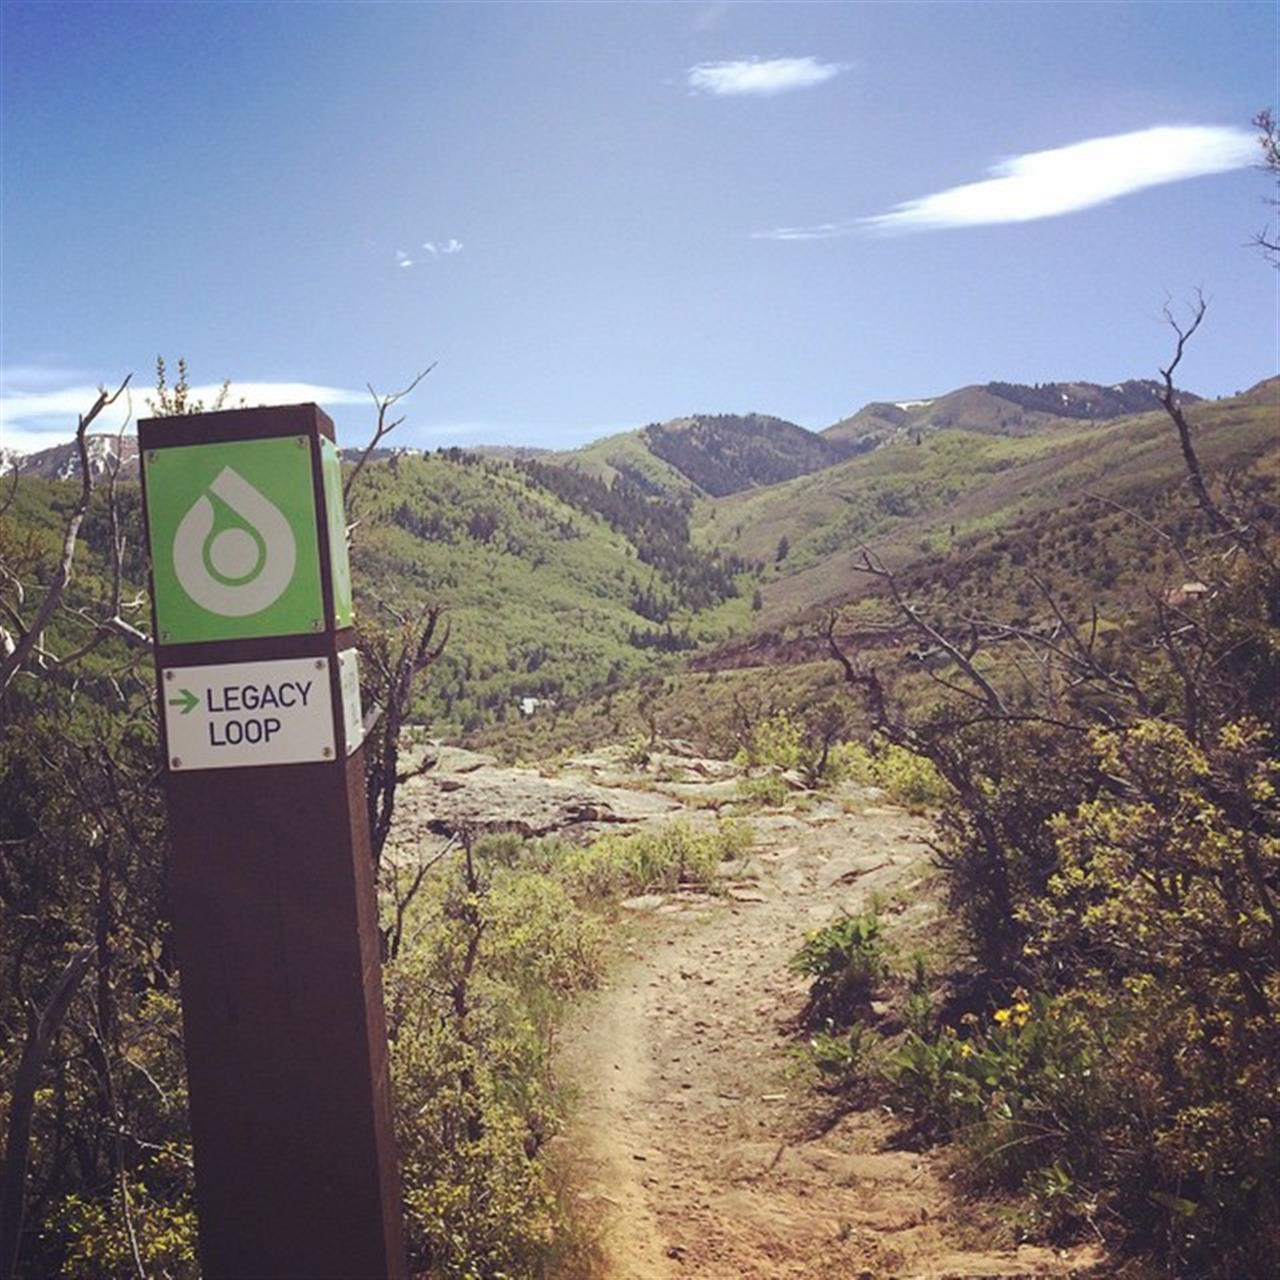 The @utaholympicpark is right in our backyard with a trail system perfect for walking, hiking or biking! #legacyloop #olympicpark #parkcity #slc #leadingrelocal